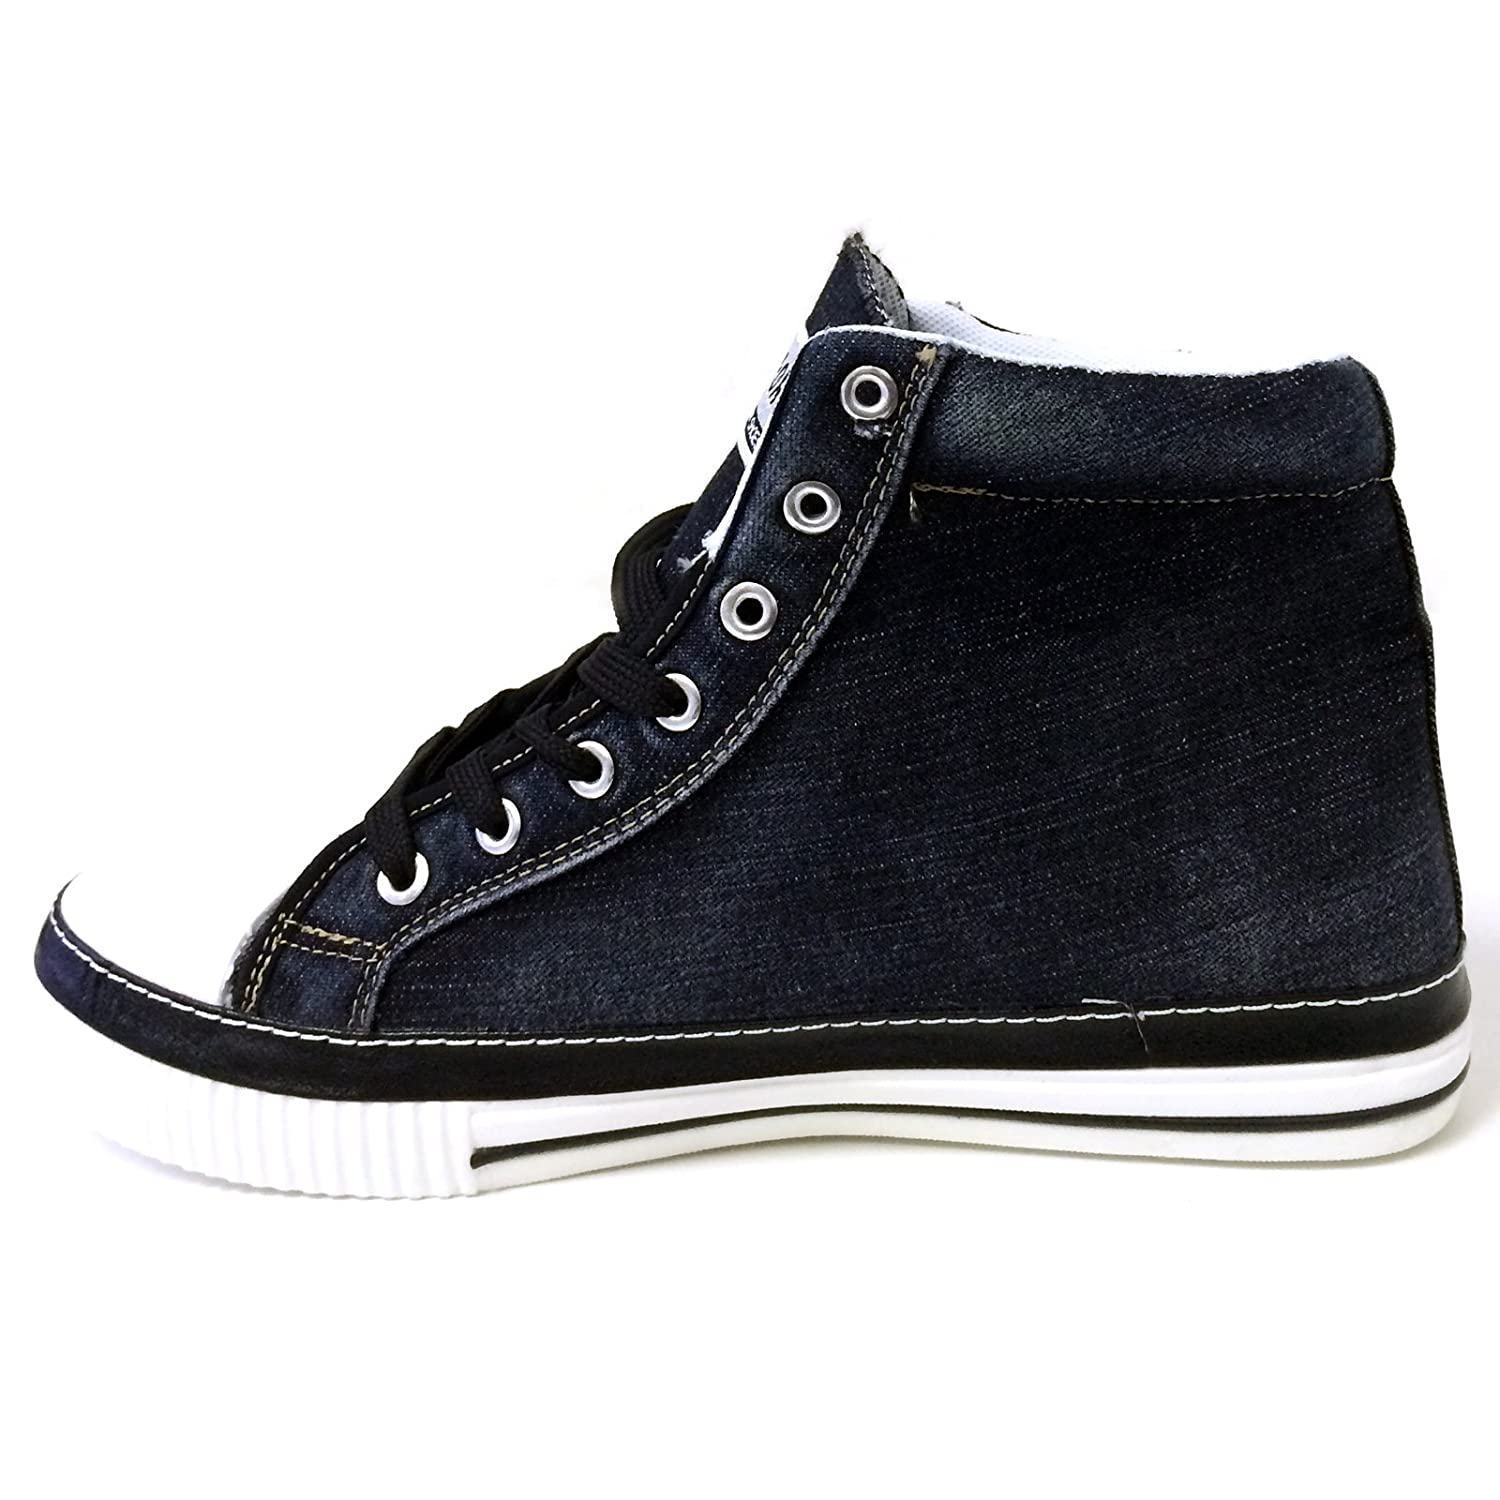 bb369fe8cf0a64 Amazon.com | JM-5709 Men's High-top Denim Sneakers Canvas Jeans Casual Lace  up Fashion Stone-Washed Boots Shoes | Fashion Sneakers